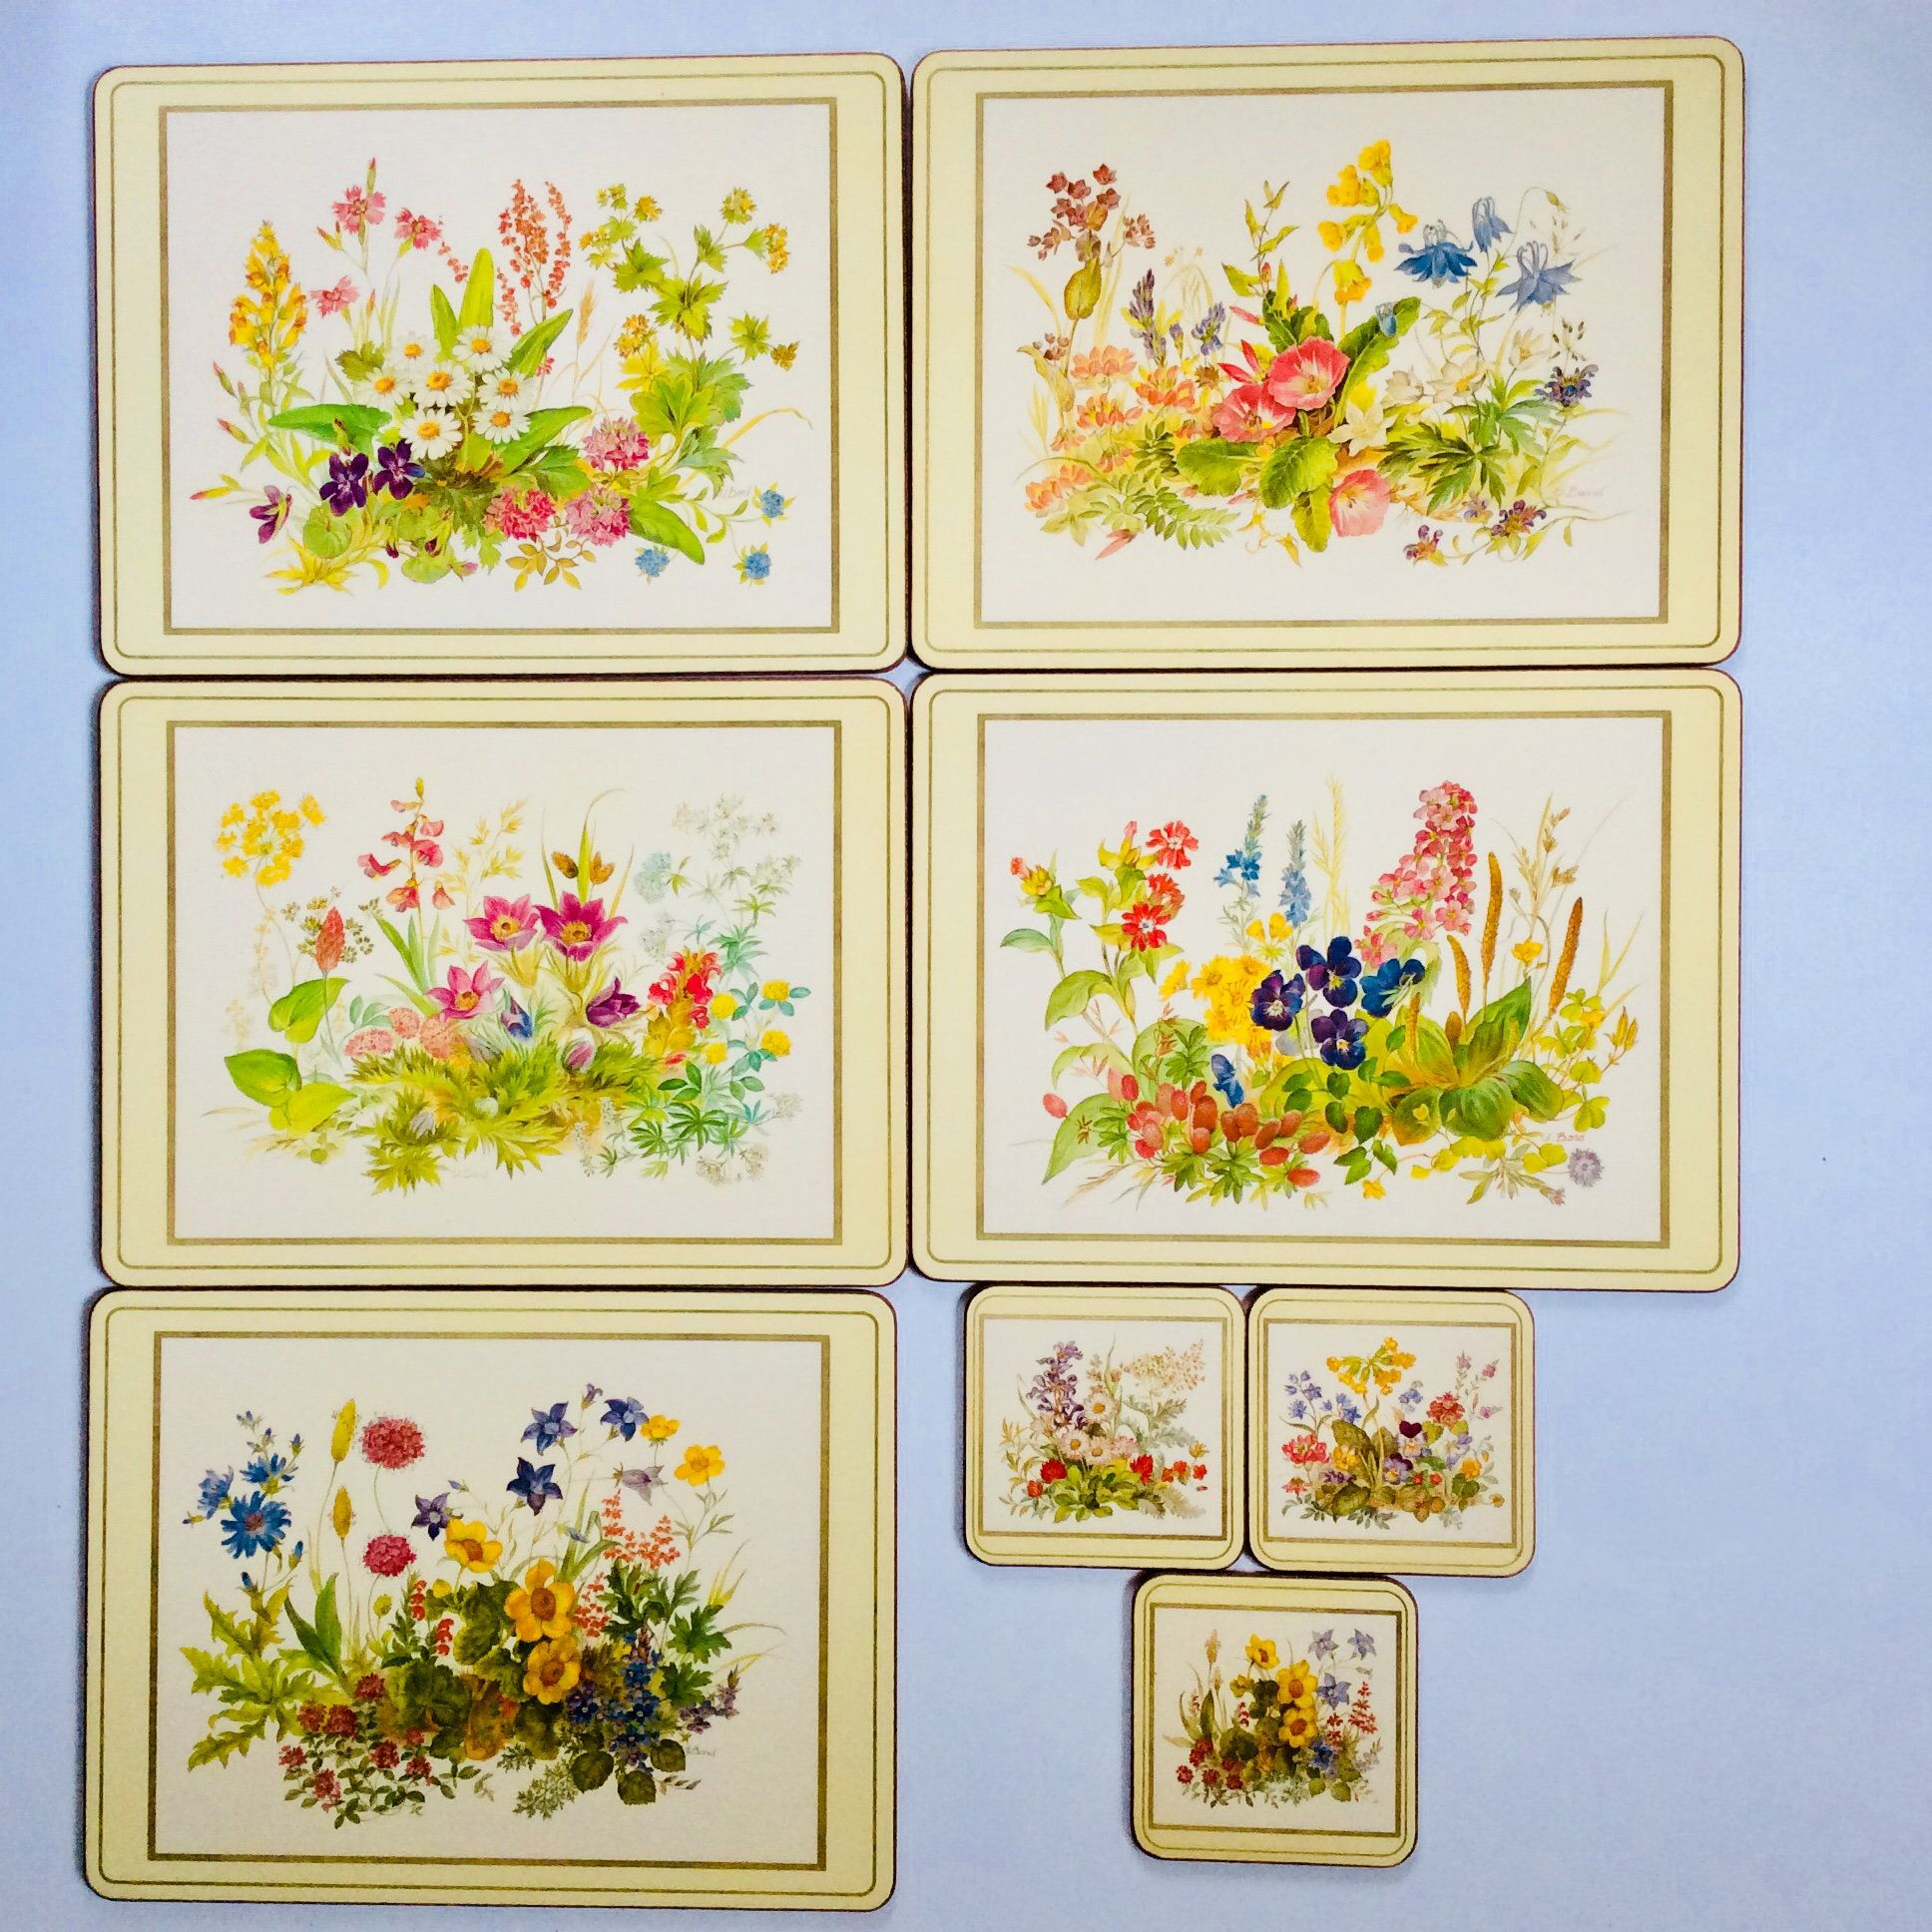 Pimpernel Placemats Set Of 5 Coasters Set Of 3 Table Etsy Unique Hostess Gifts Placemats Vintage Gifts